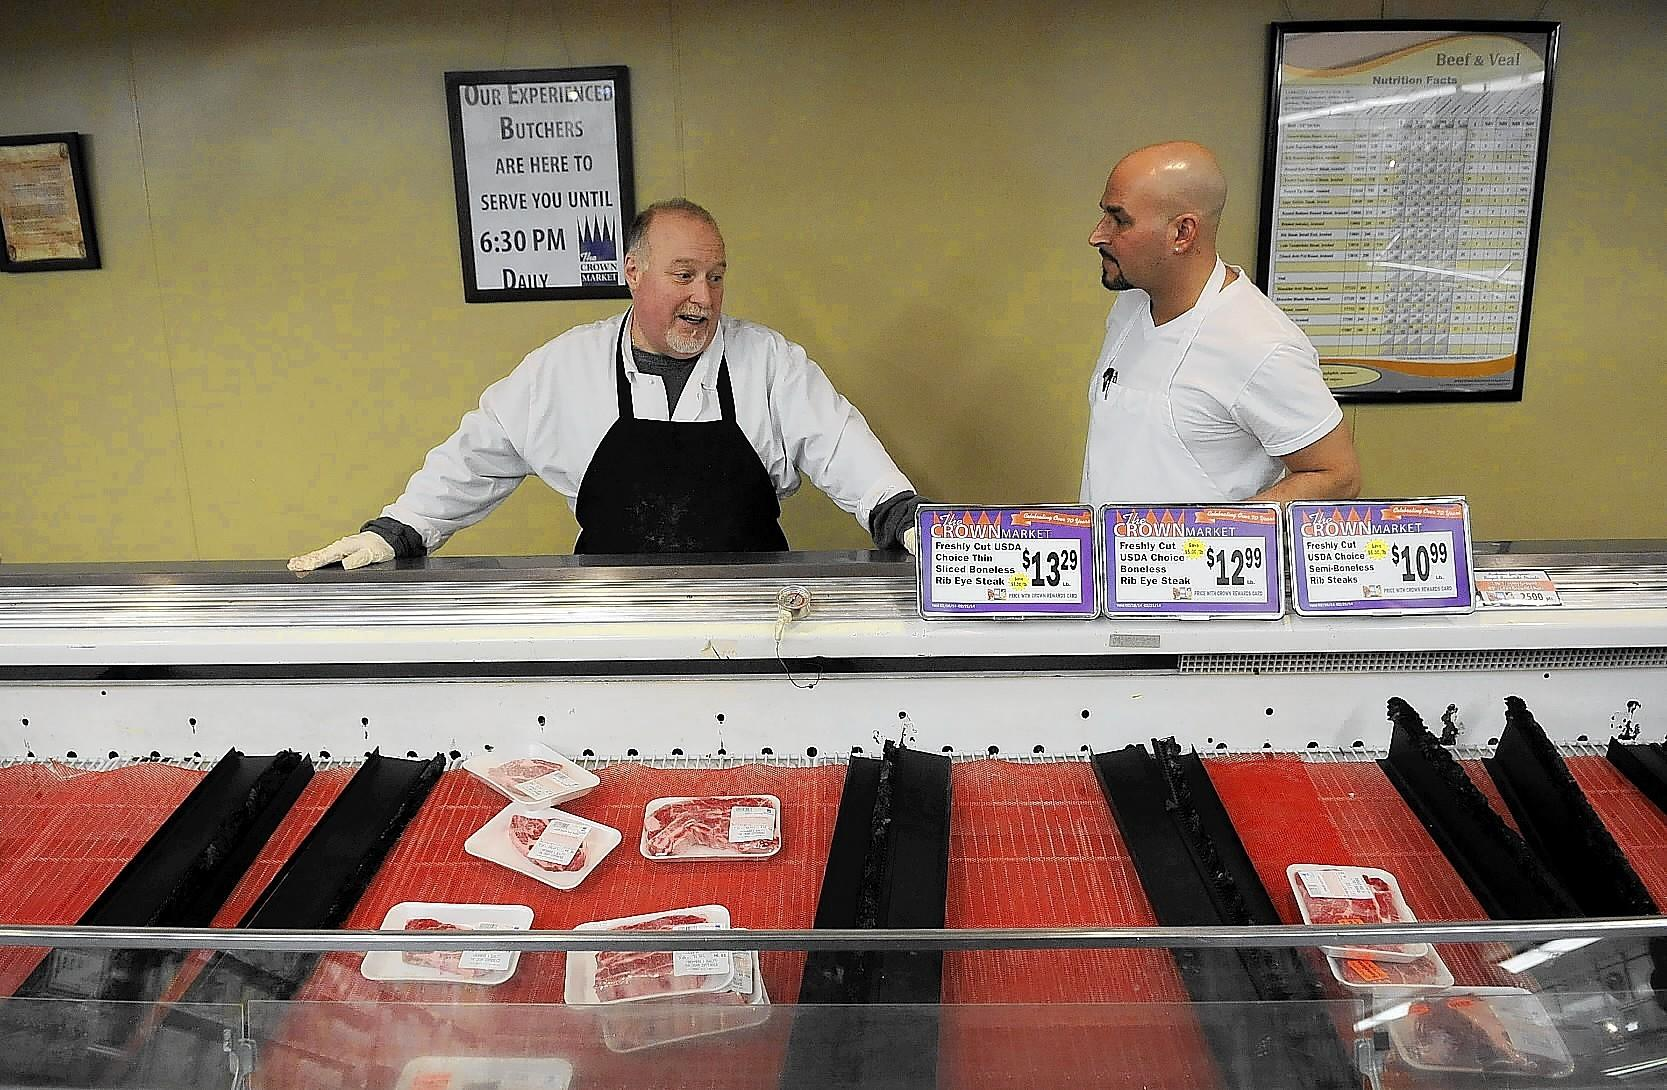 (L to R) Tom DeForge, meat department manager, and Matt Arsenault, deli chef, chat with one another about how they are unable to keep up with the demand for meats and prepared foods for their customers at Crown Market in West Hartford after it was announced earlier this week that they will close their doors for good around February 28.